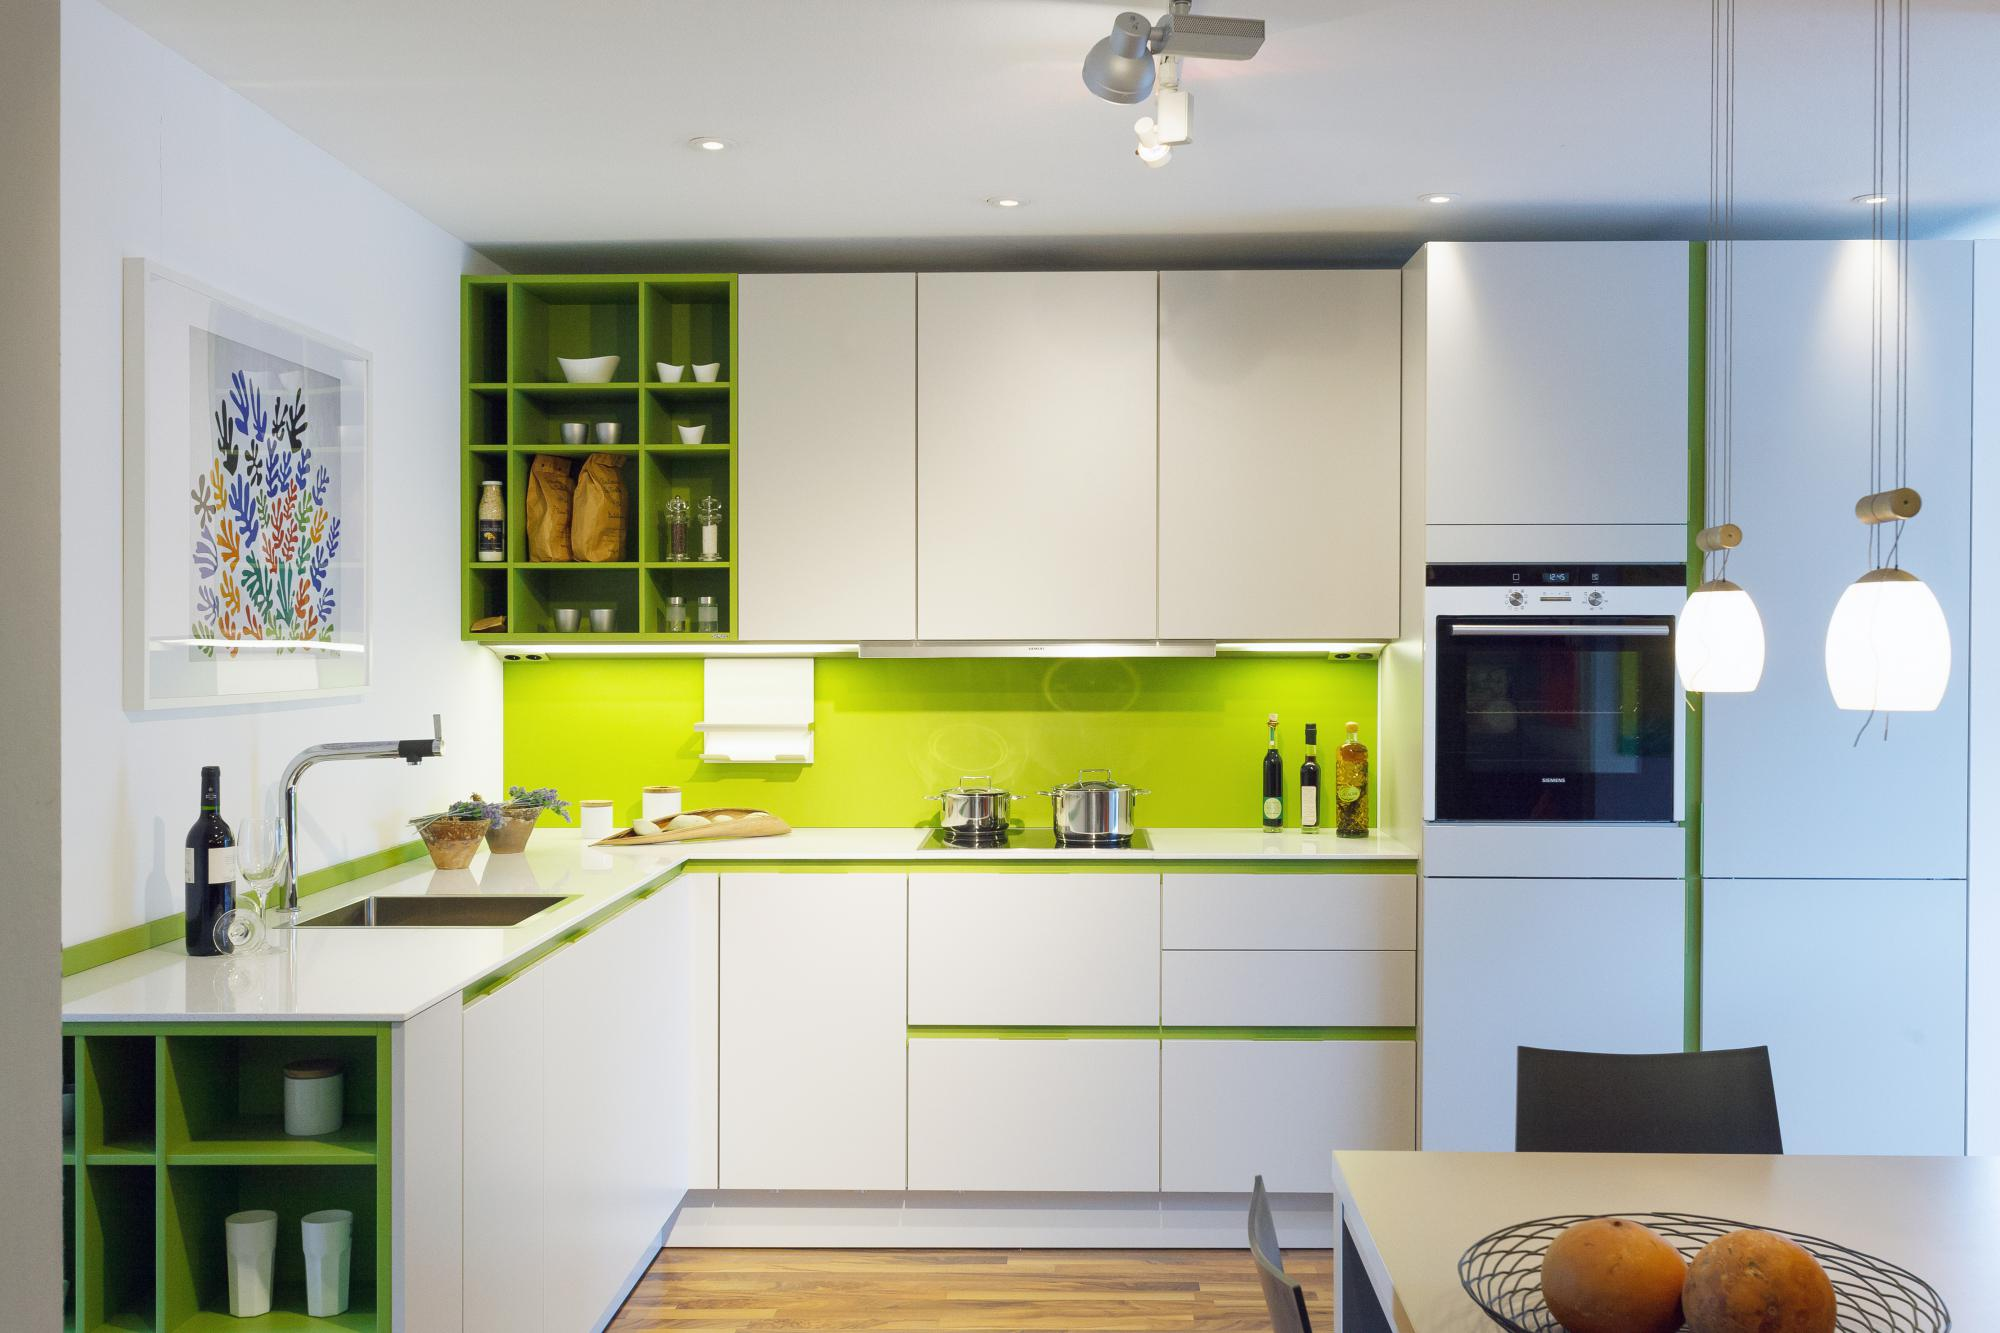 Contemporary kitchen design kitchens with a pop of color for Modern kitchen cabinets colors